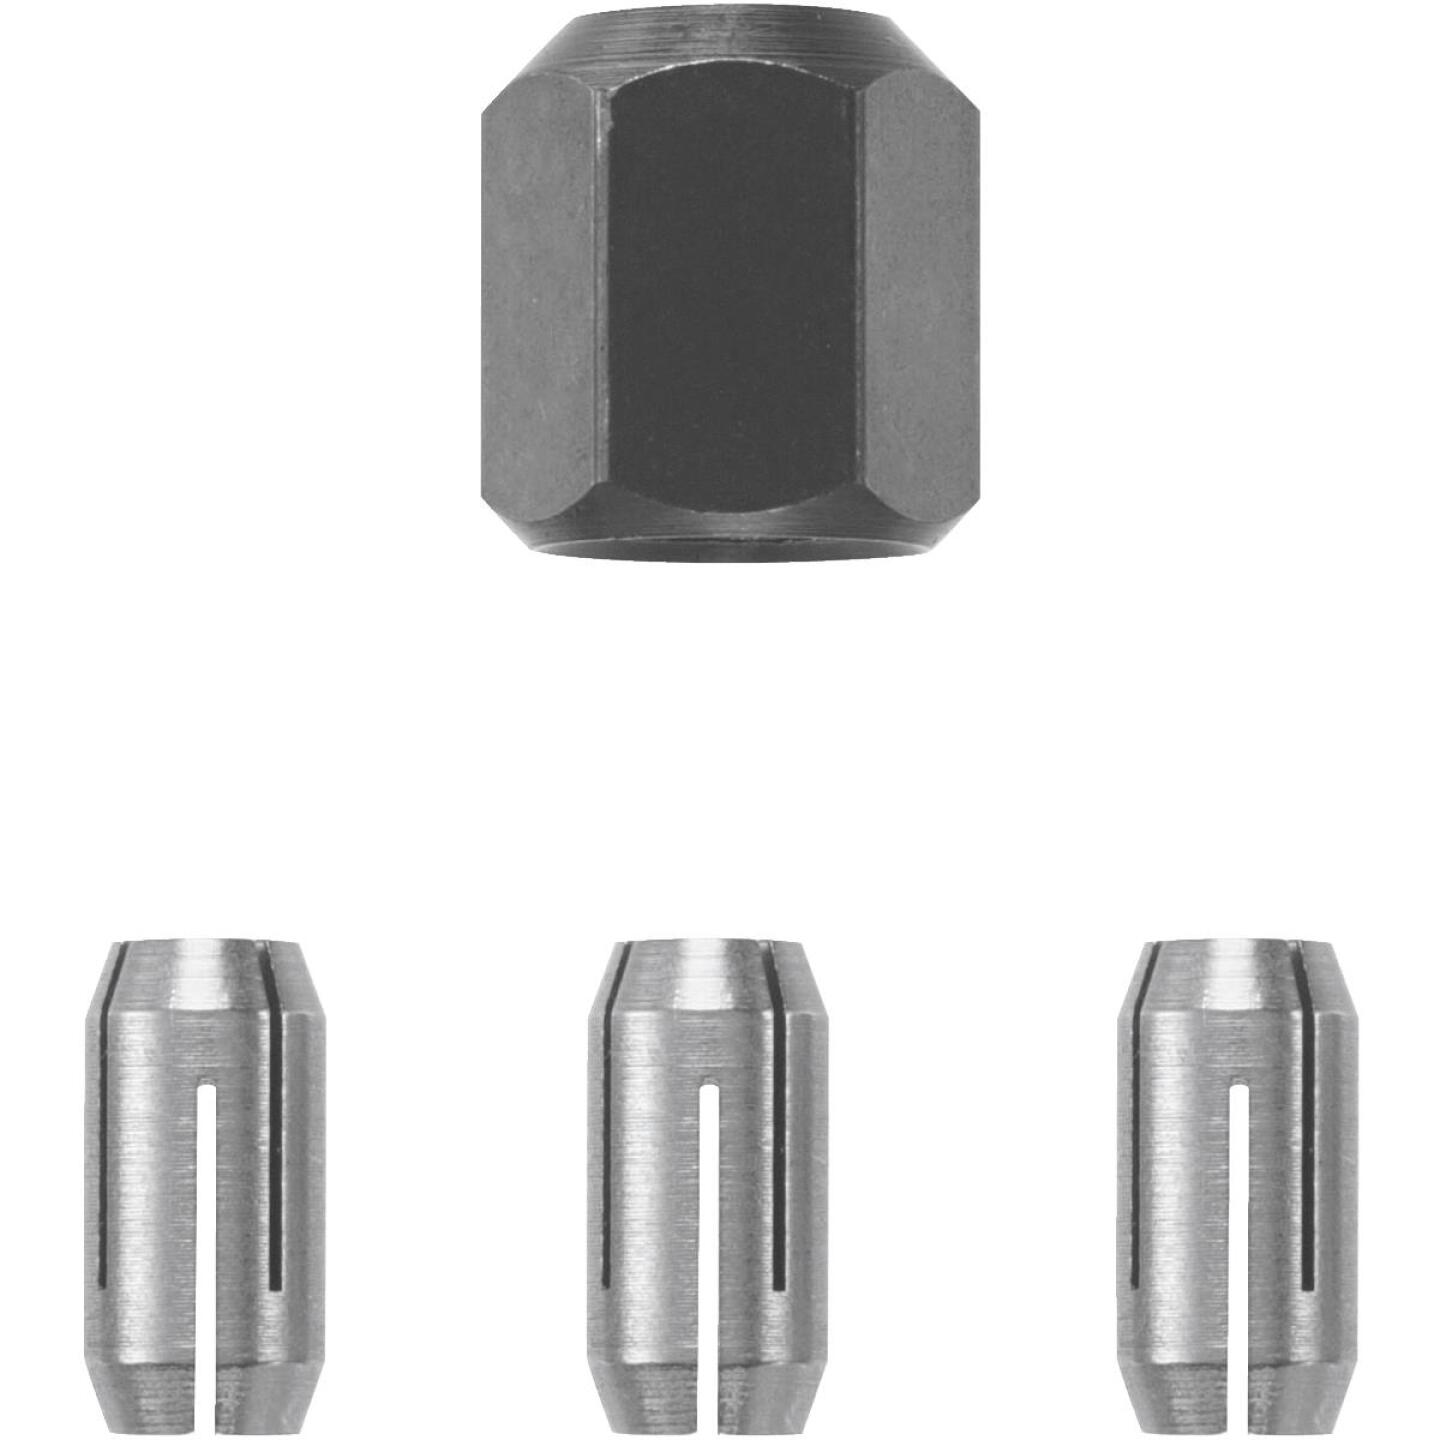 RotoZip 1/8 In., 5/32 In., 1/4 In. Collet Nut Kit (4-Pieces) Image 1